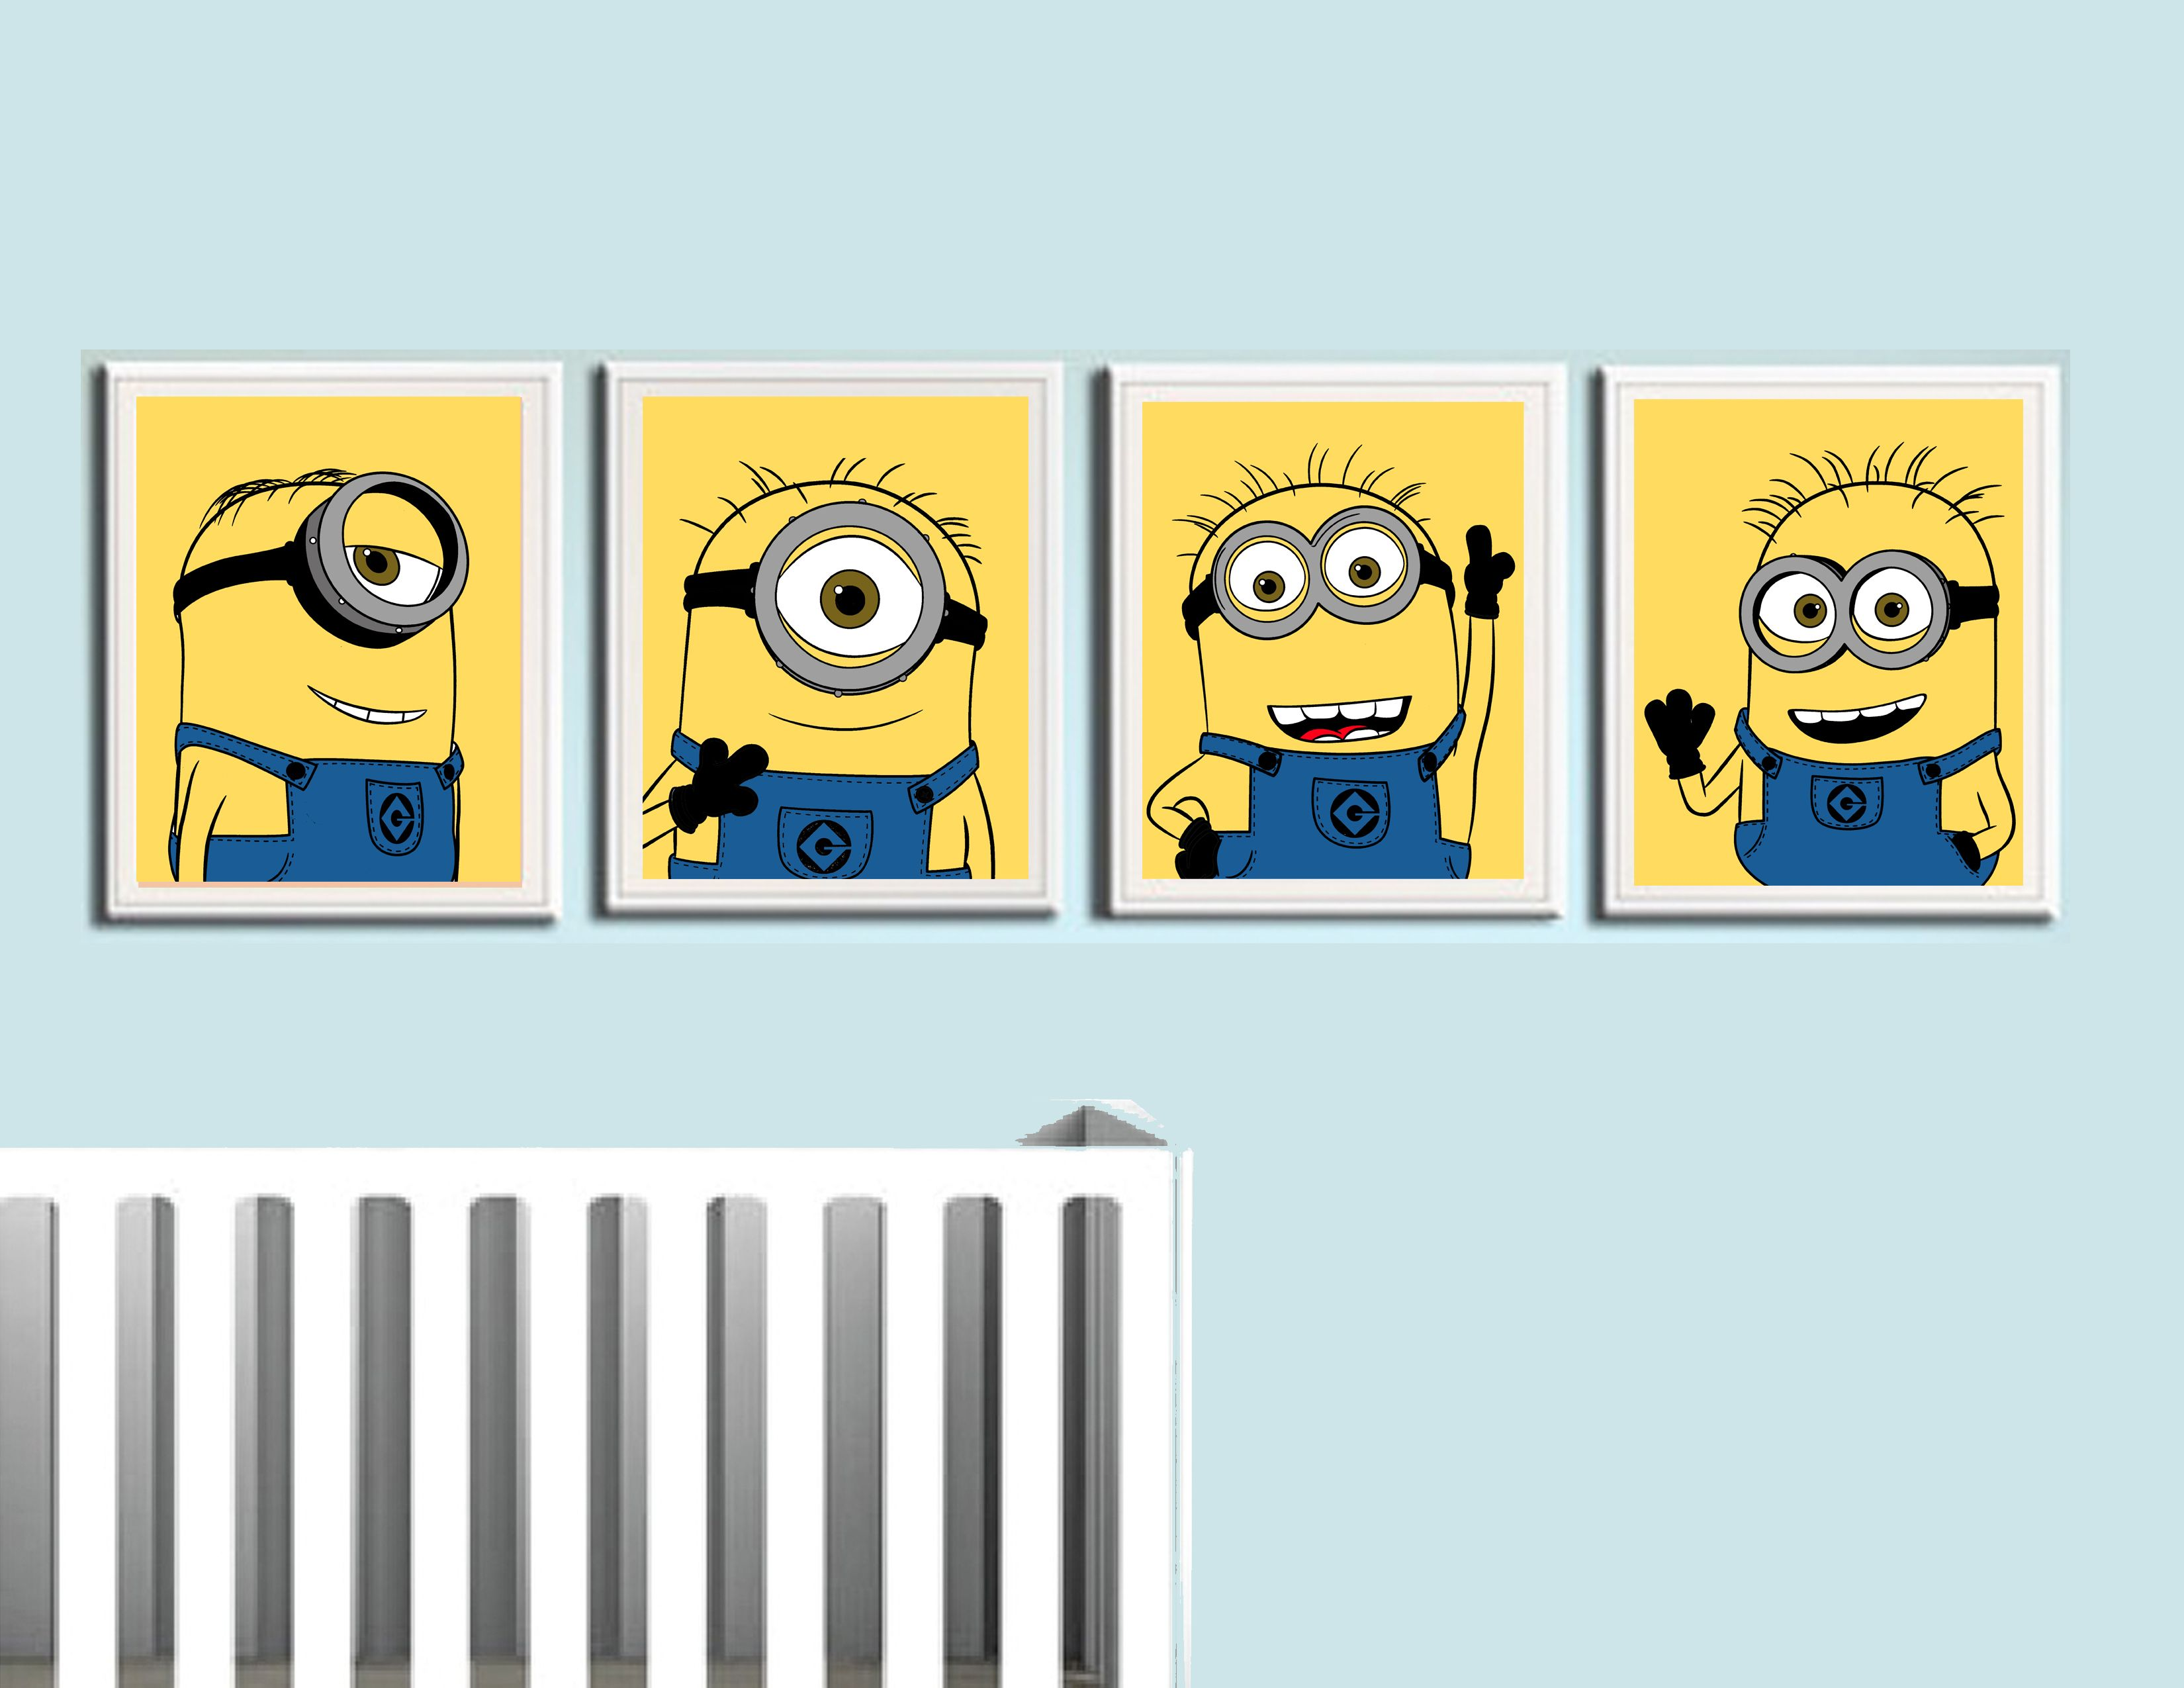 Minion 20nursery Original Jpg 3300 2550 Minion Nursery Minion Painting Minion Room